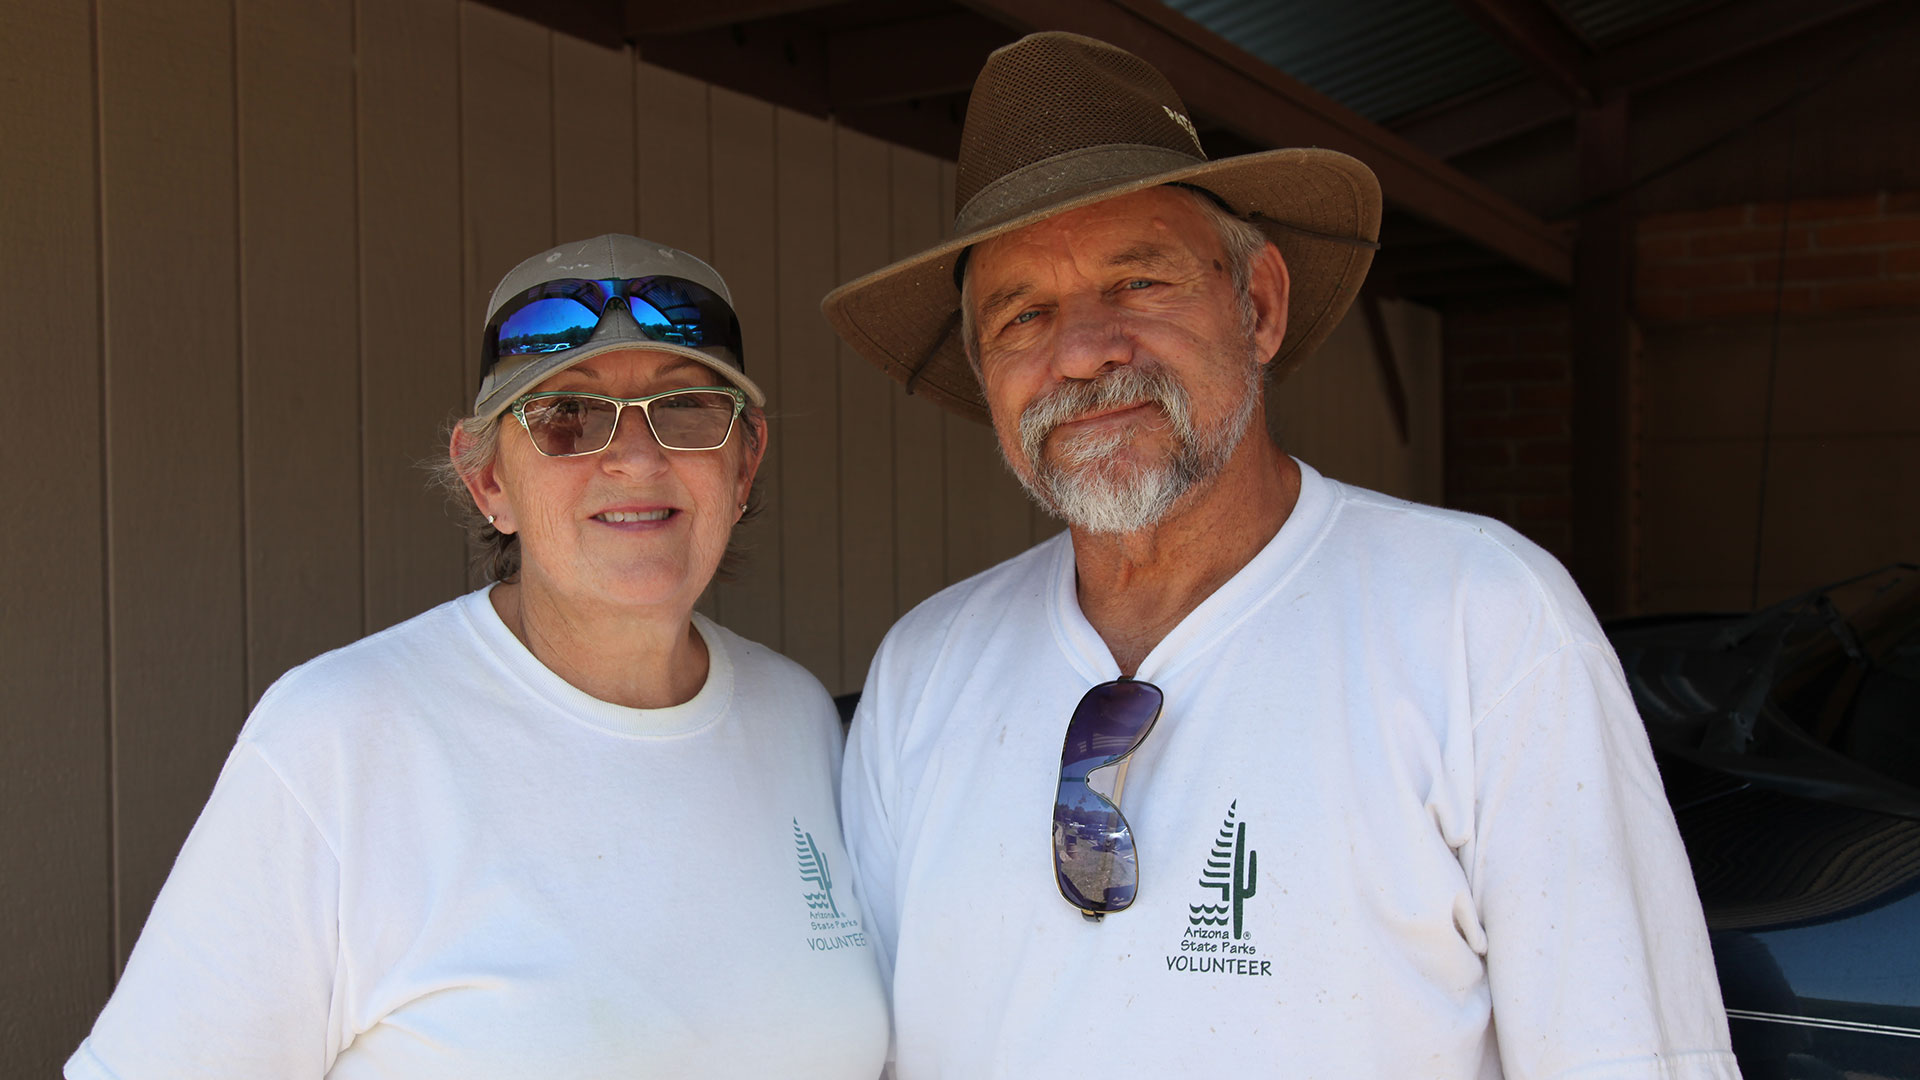 Leta and Jerry Bice found out about the state's volunteer program after moving to Arizona in 2016.